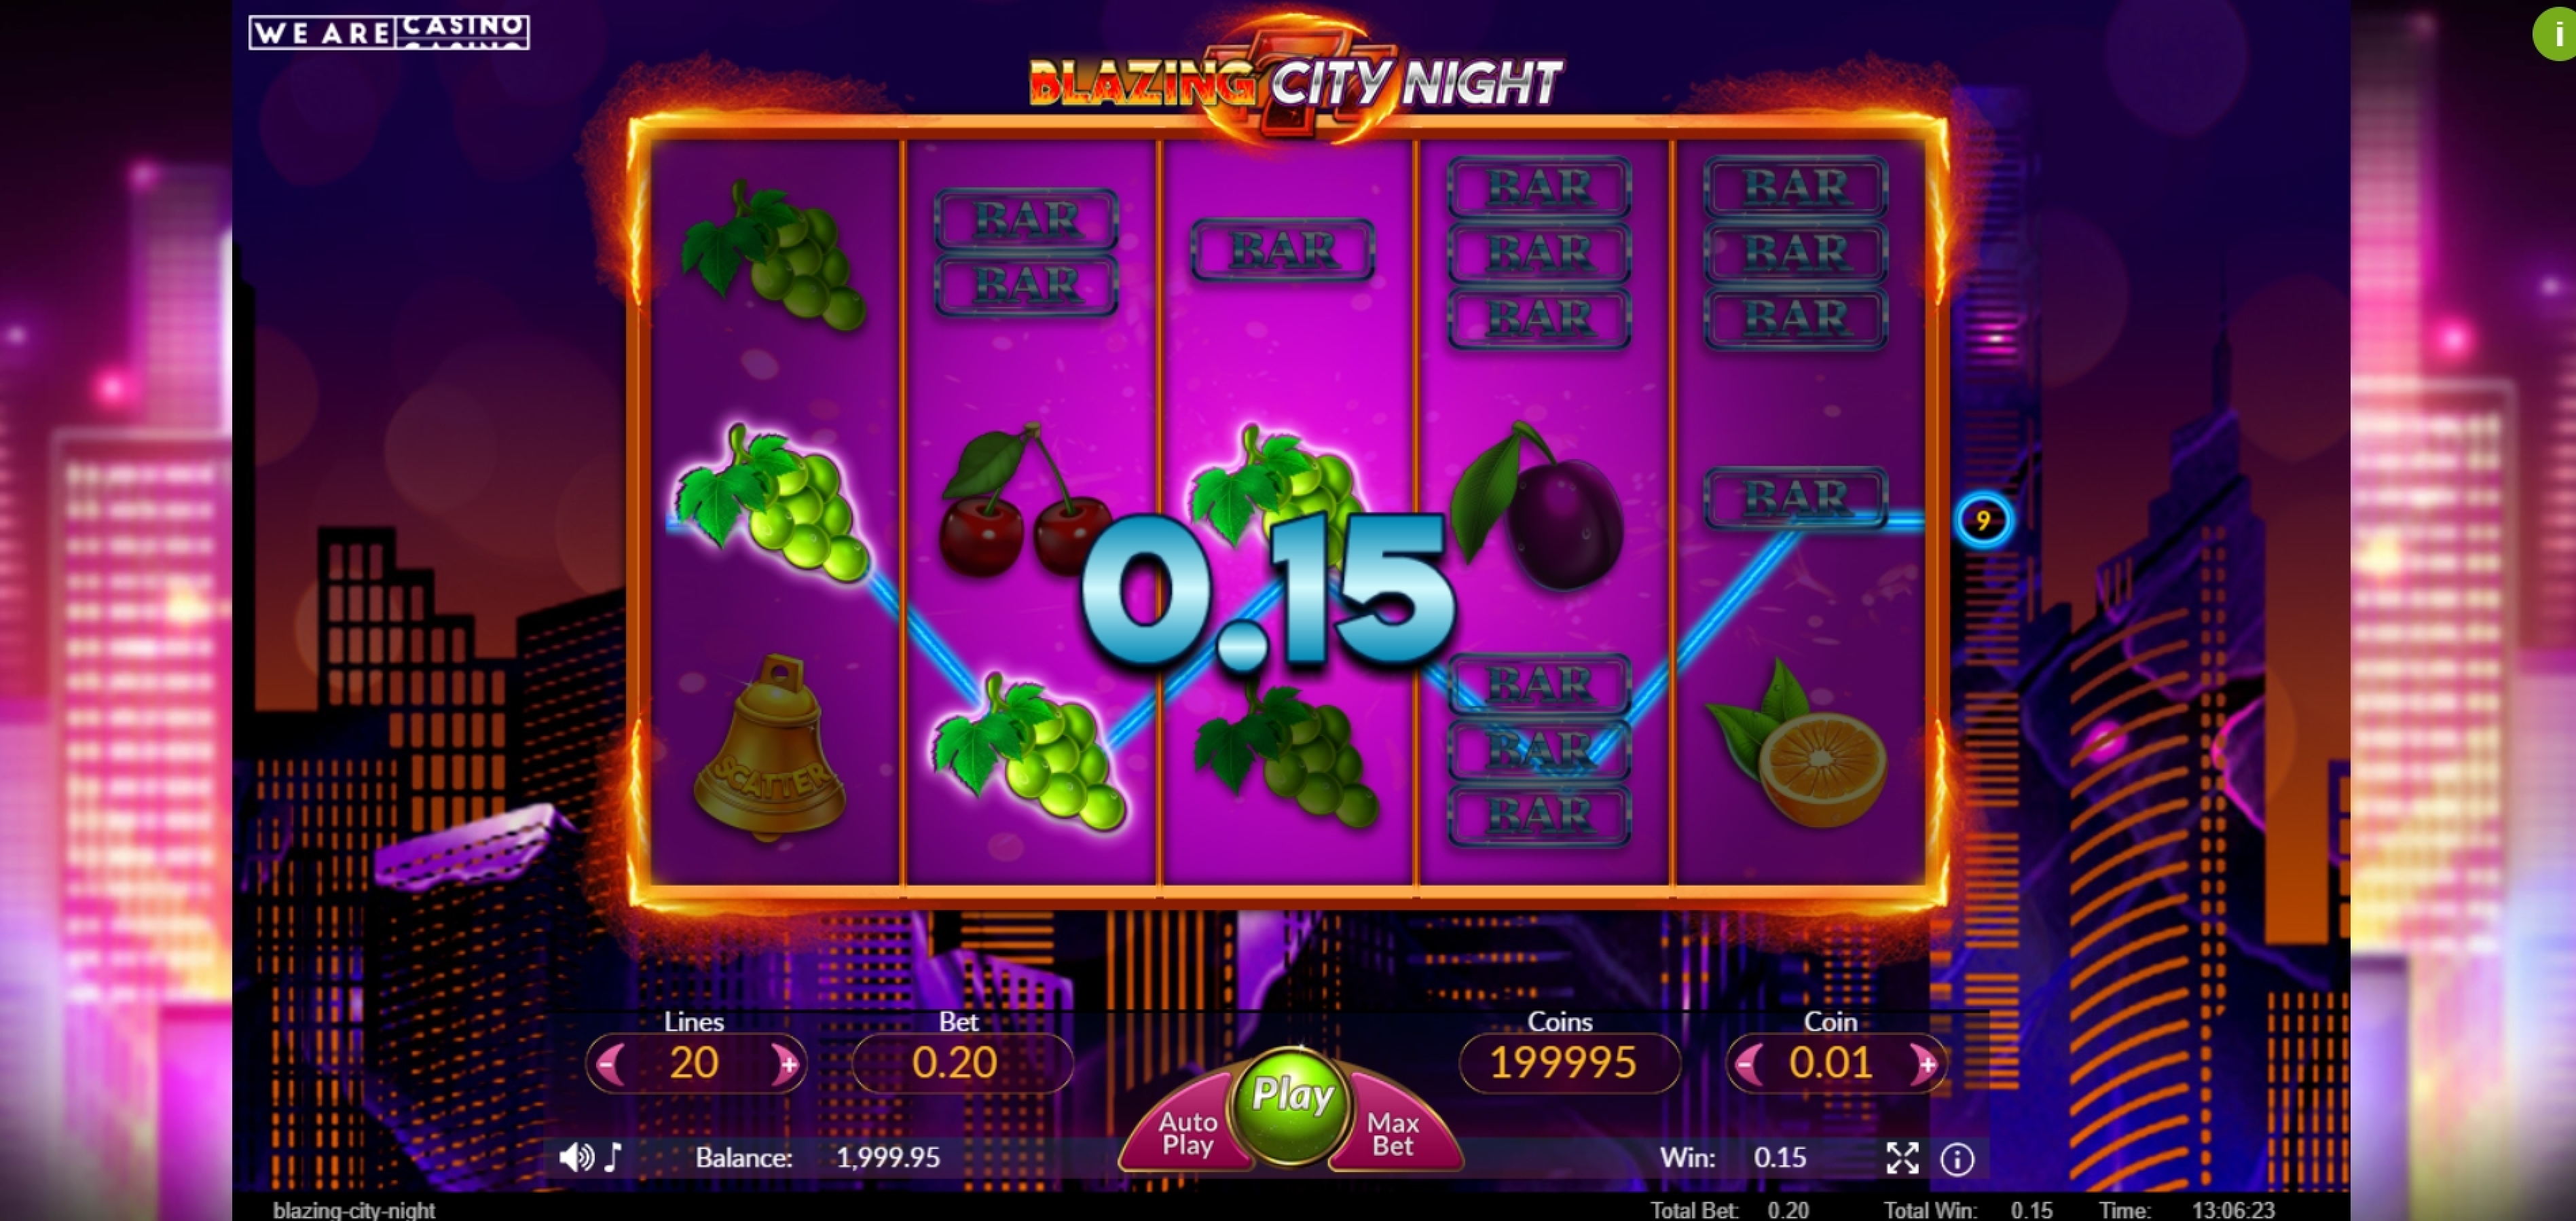 Win Money in Blazing City Night Free Slot Game by We Are Casino